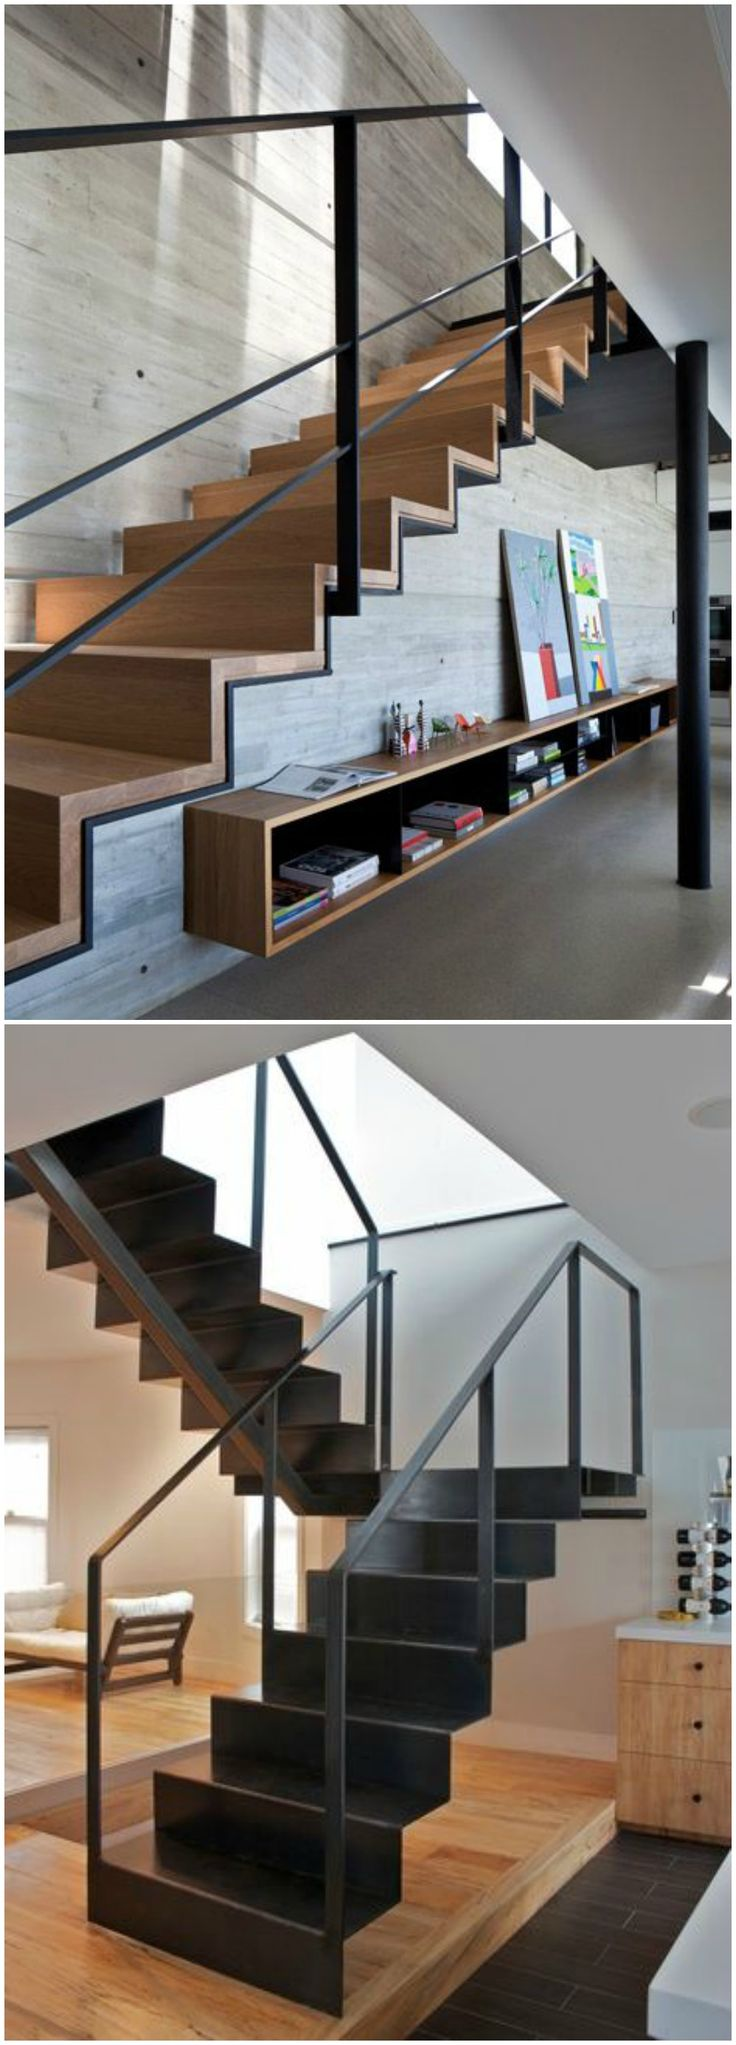 327 best baranes ferro images on pinterest - Escaleras modernas interiores ...